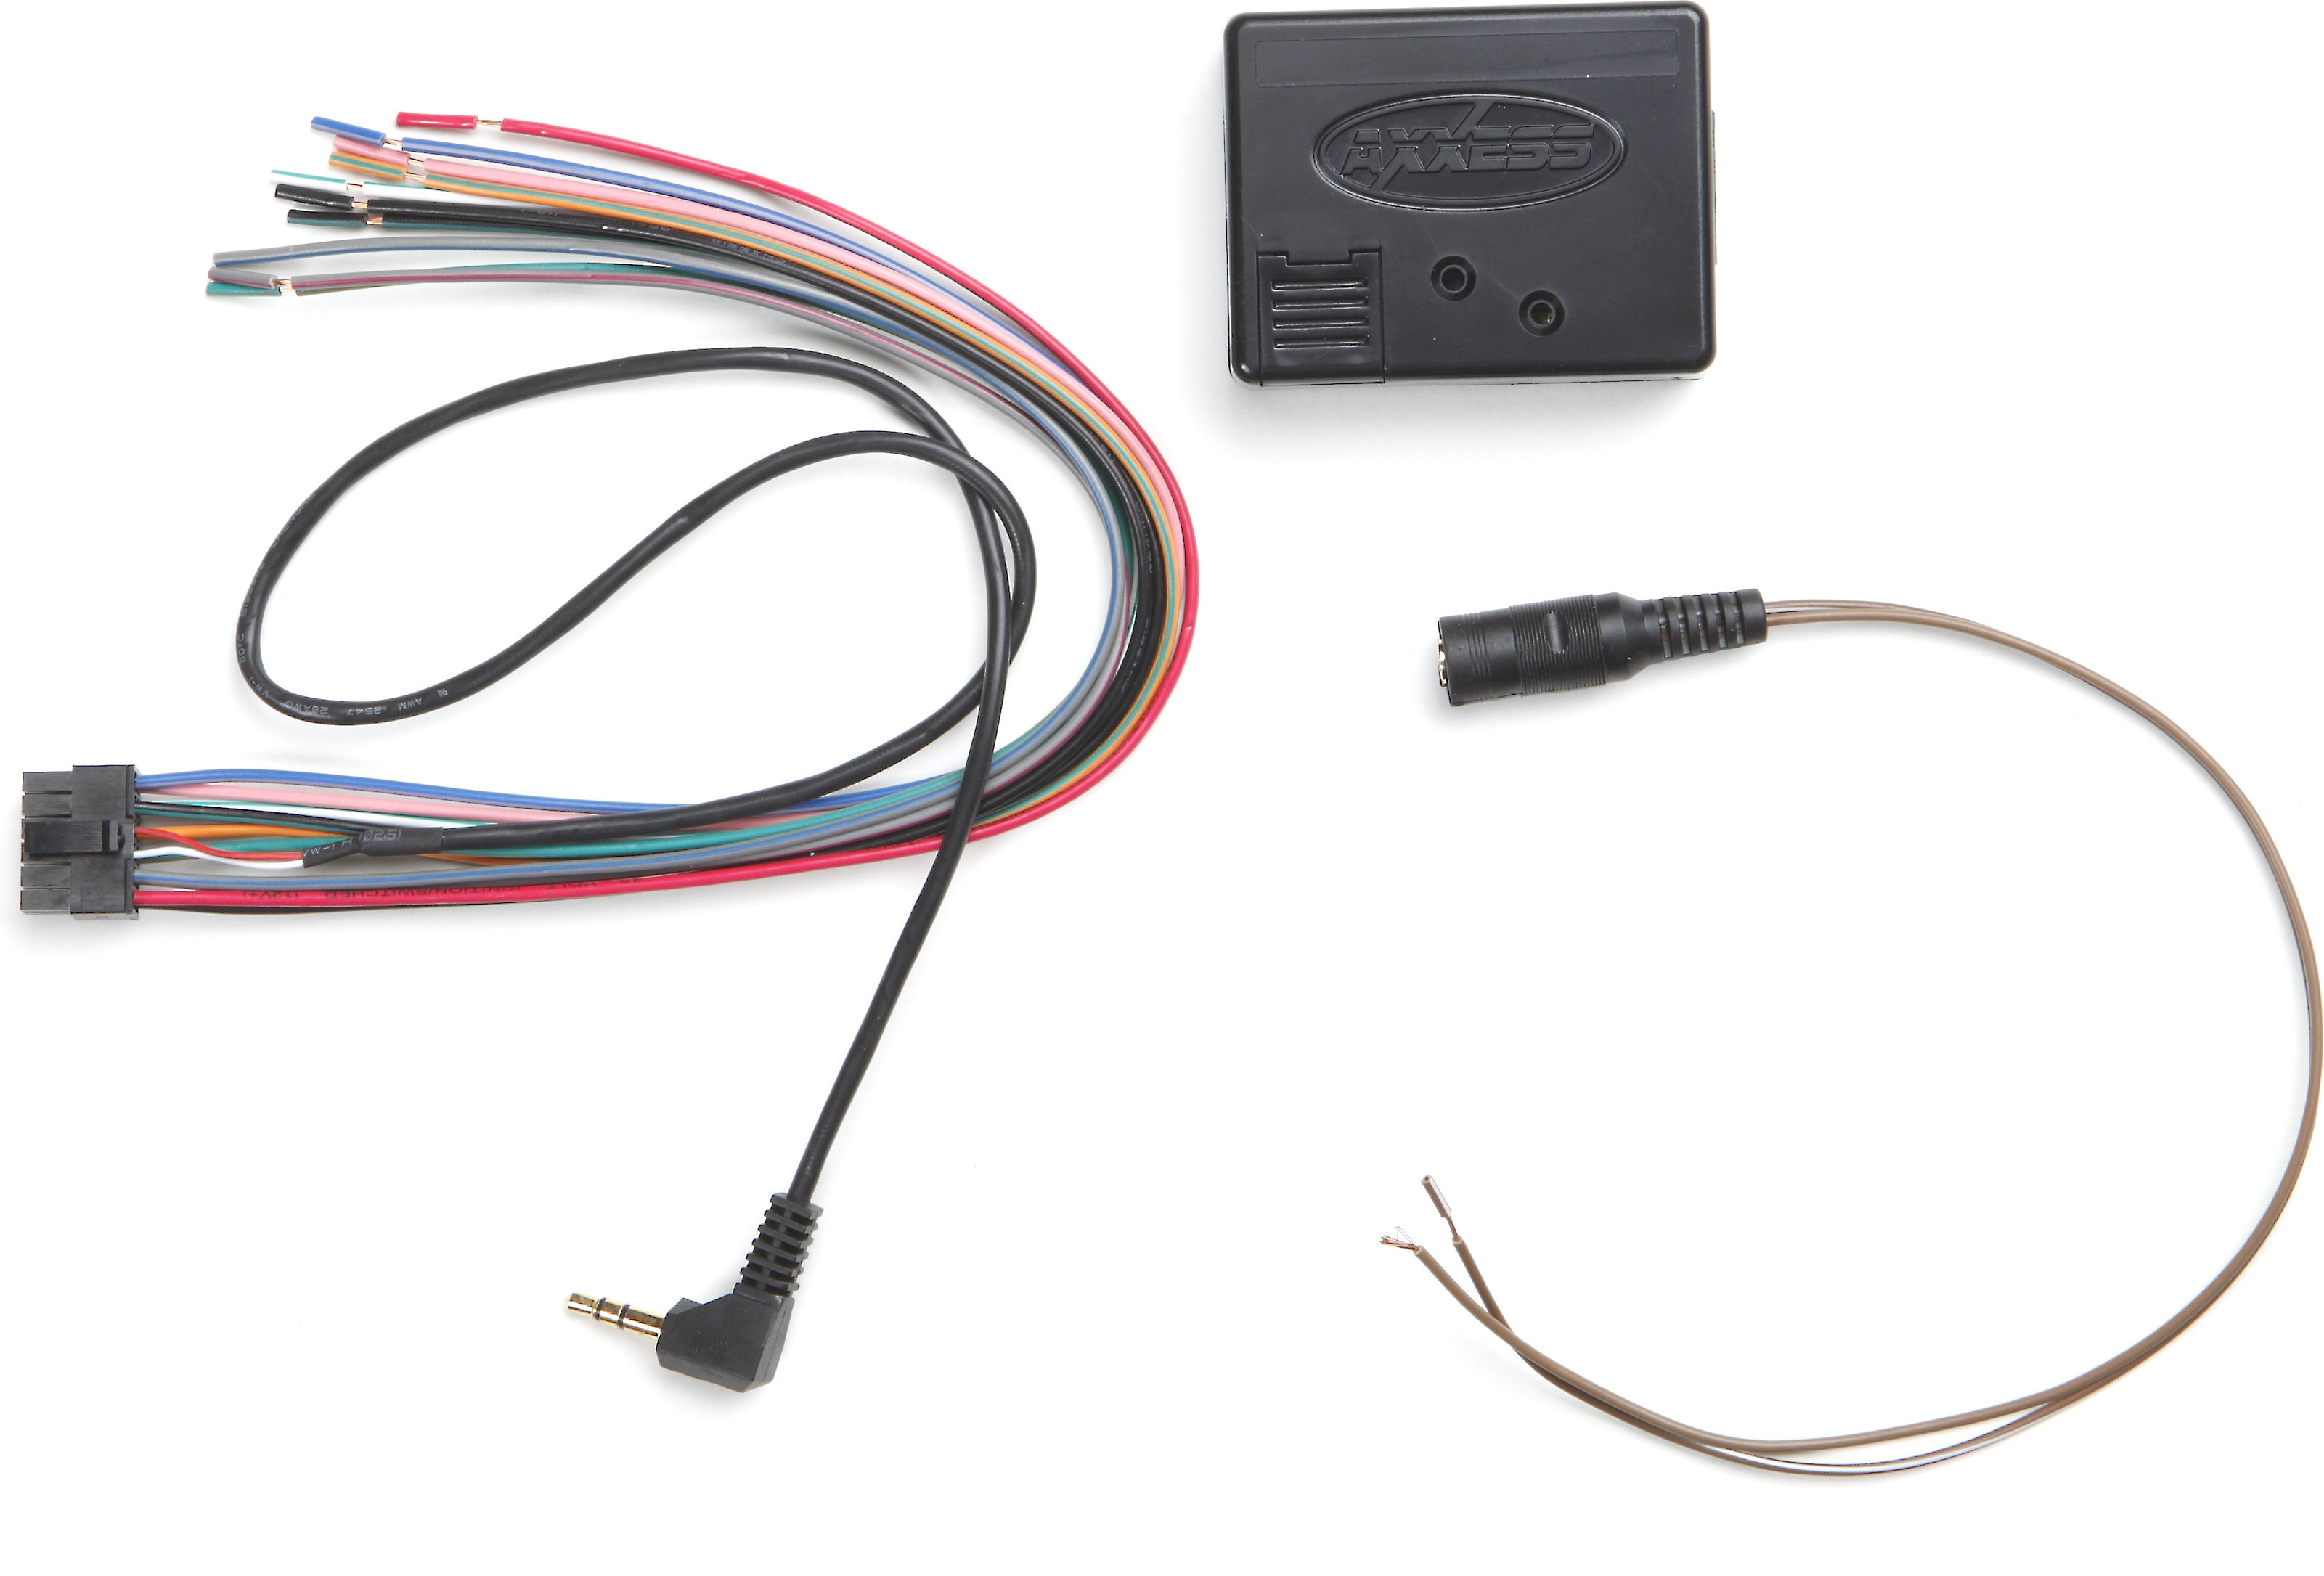 Tremendous Axxess Aswc 1 Steering Wheel Control Adapter Connects Your Cars Wiring Cloud Filiciilluminateatxorg